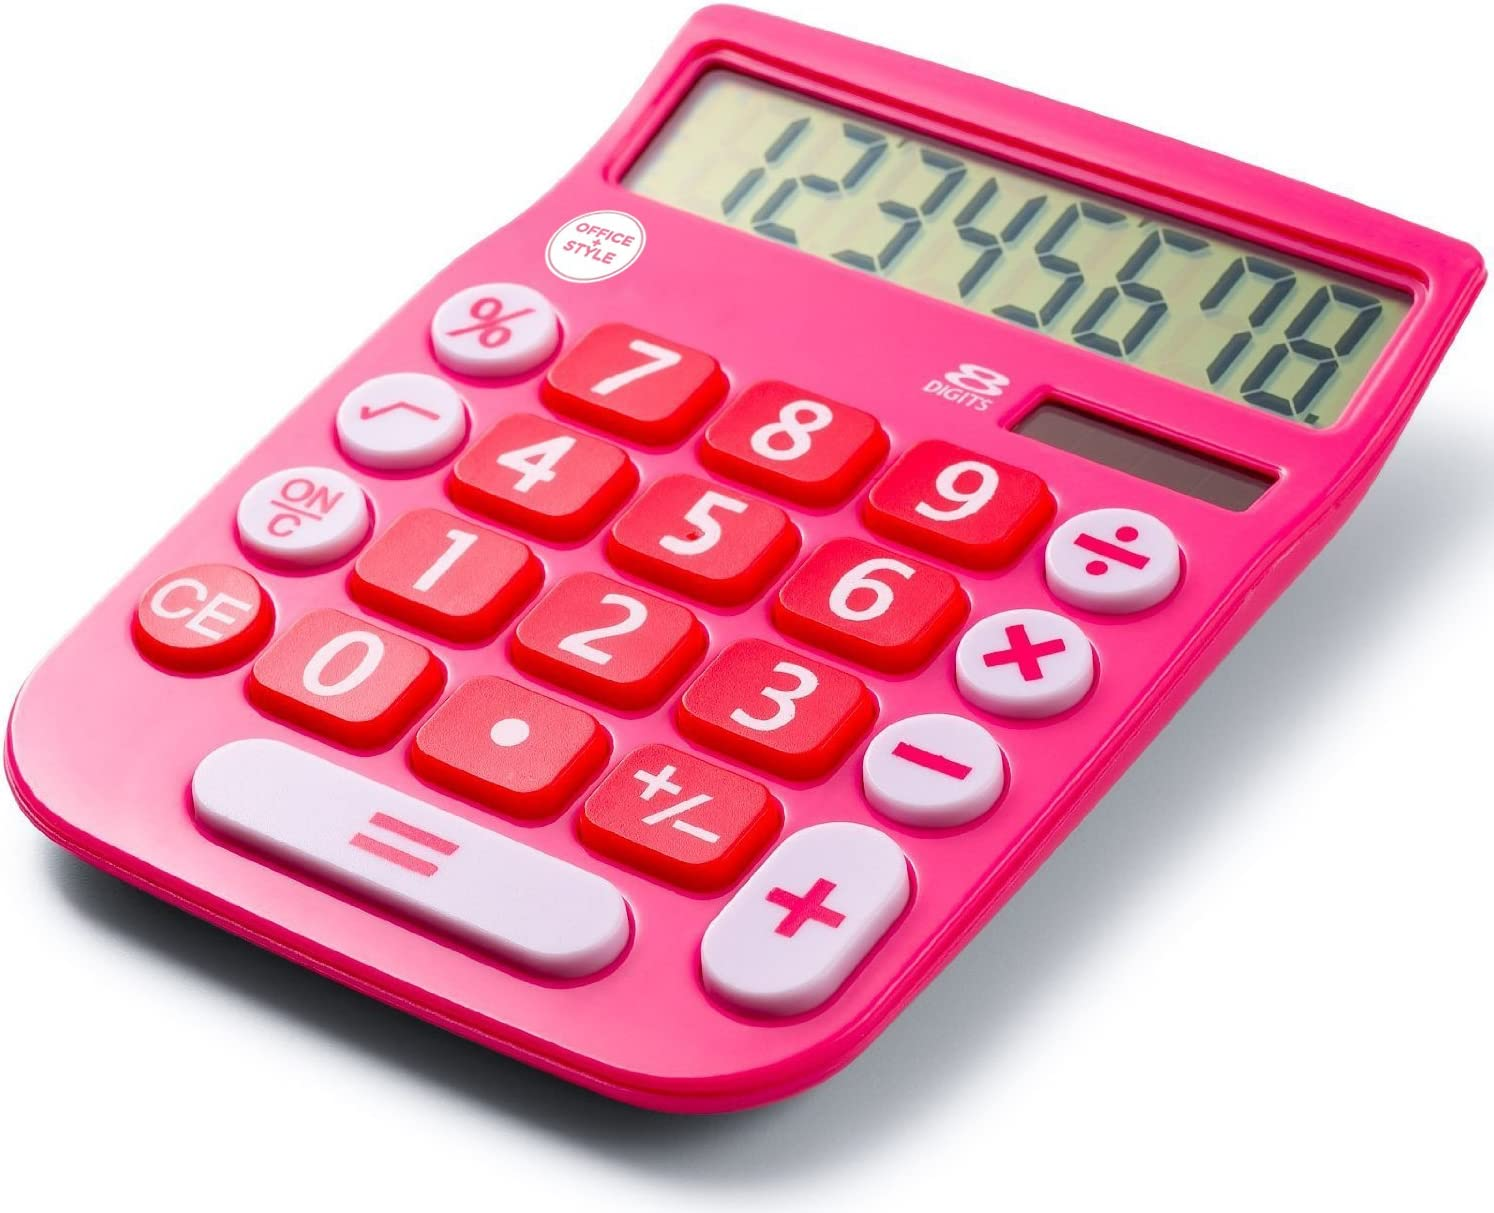 8 Digit Dual Powered Desktop Calculator, LCD Display, Pink- by Office + Style